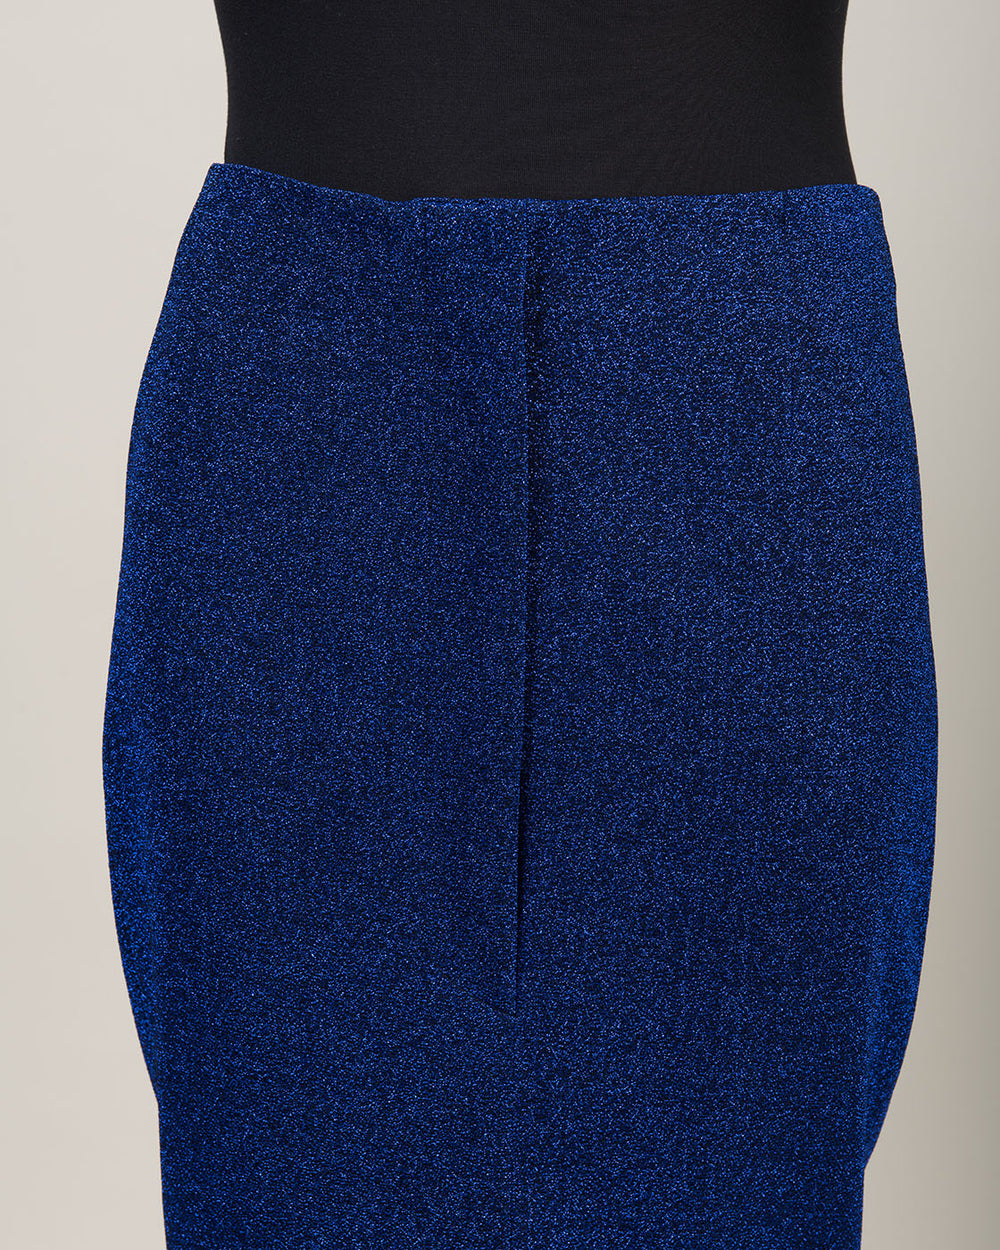 Cornflower Blue Metallic Pencil Skirt